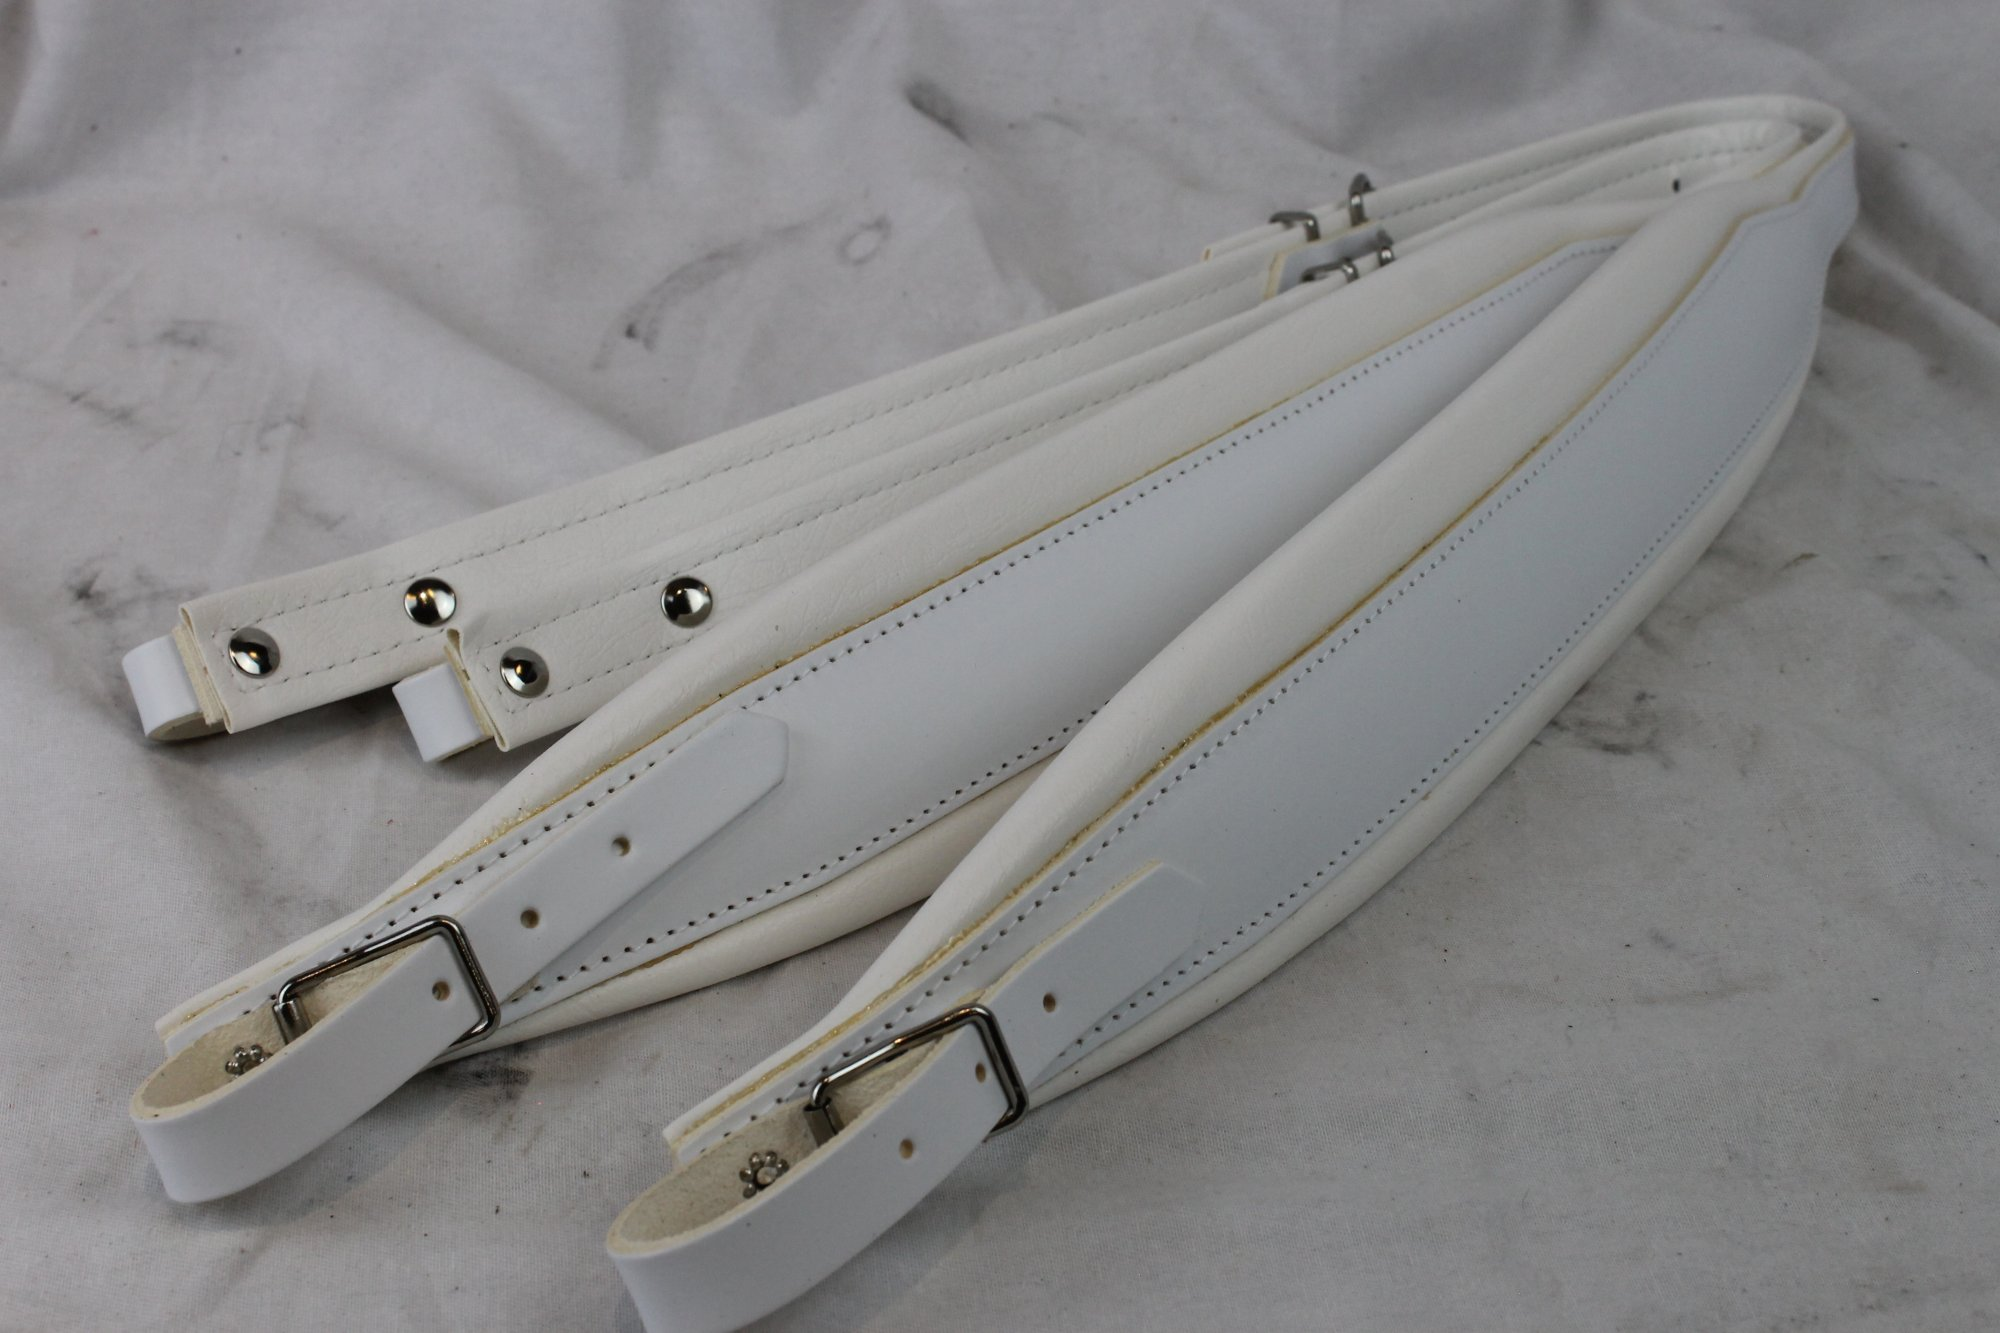 New White Leather Fuselli Accordion Shoulder Straps Width (7 cm / 2.8 inch) Length (91cm-111cm / 35.8-43.7 inch)